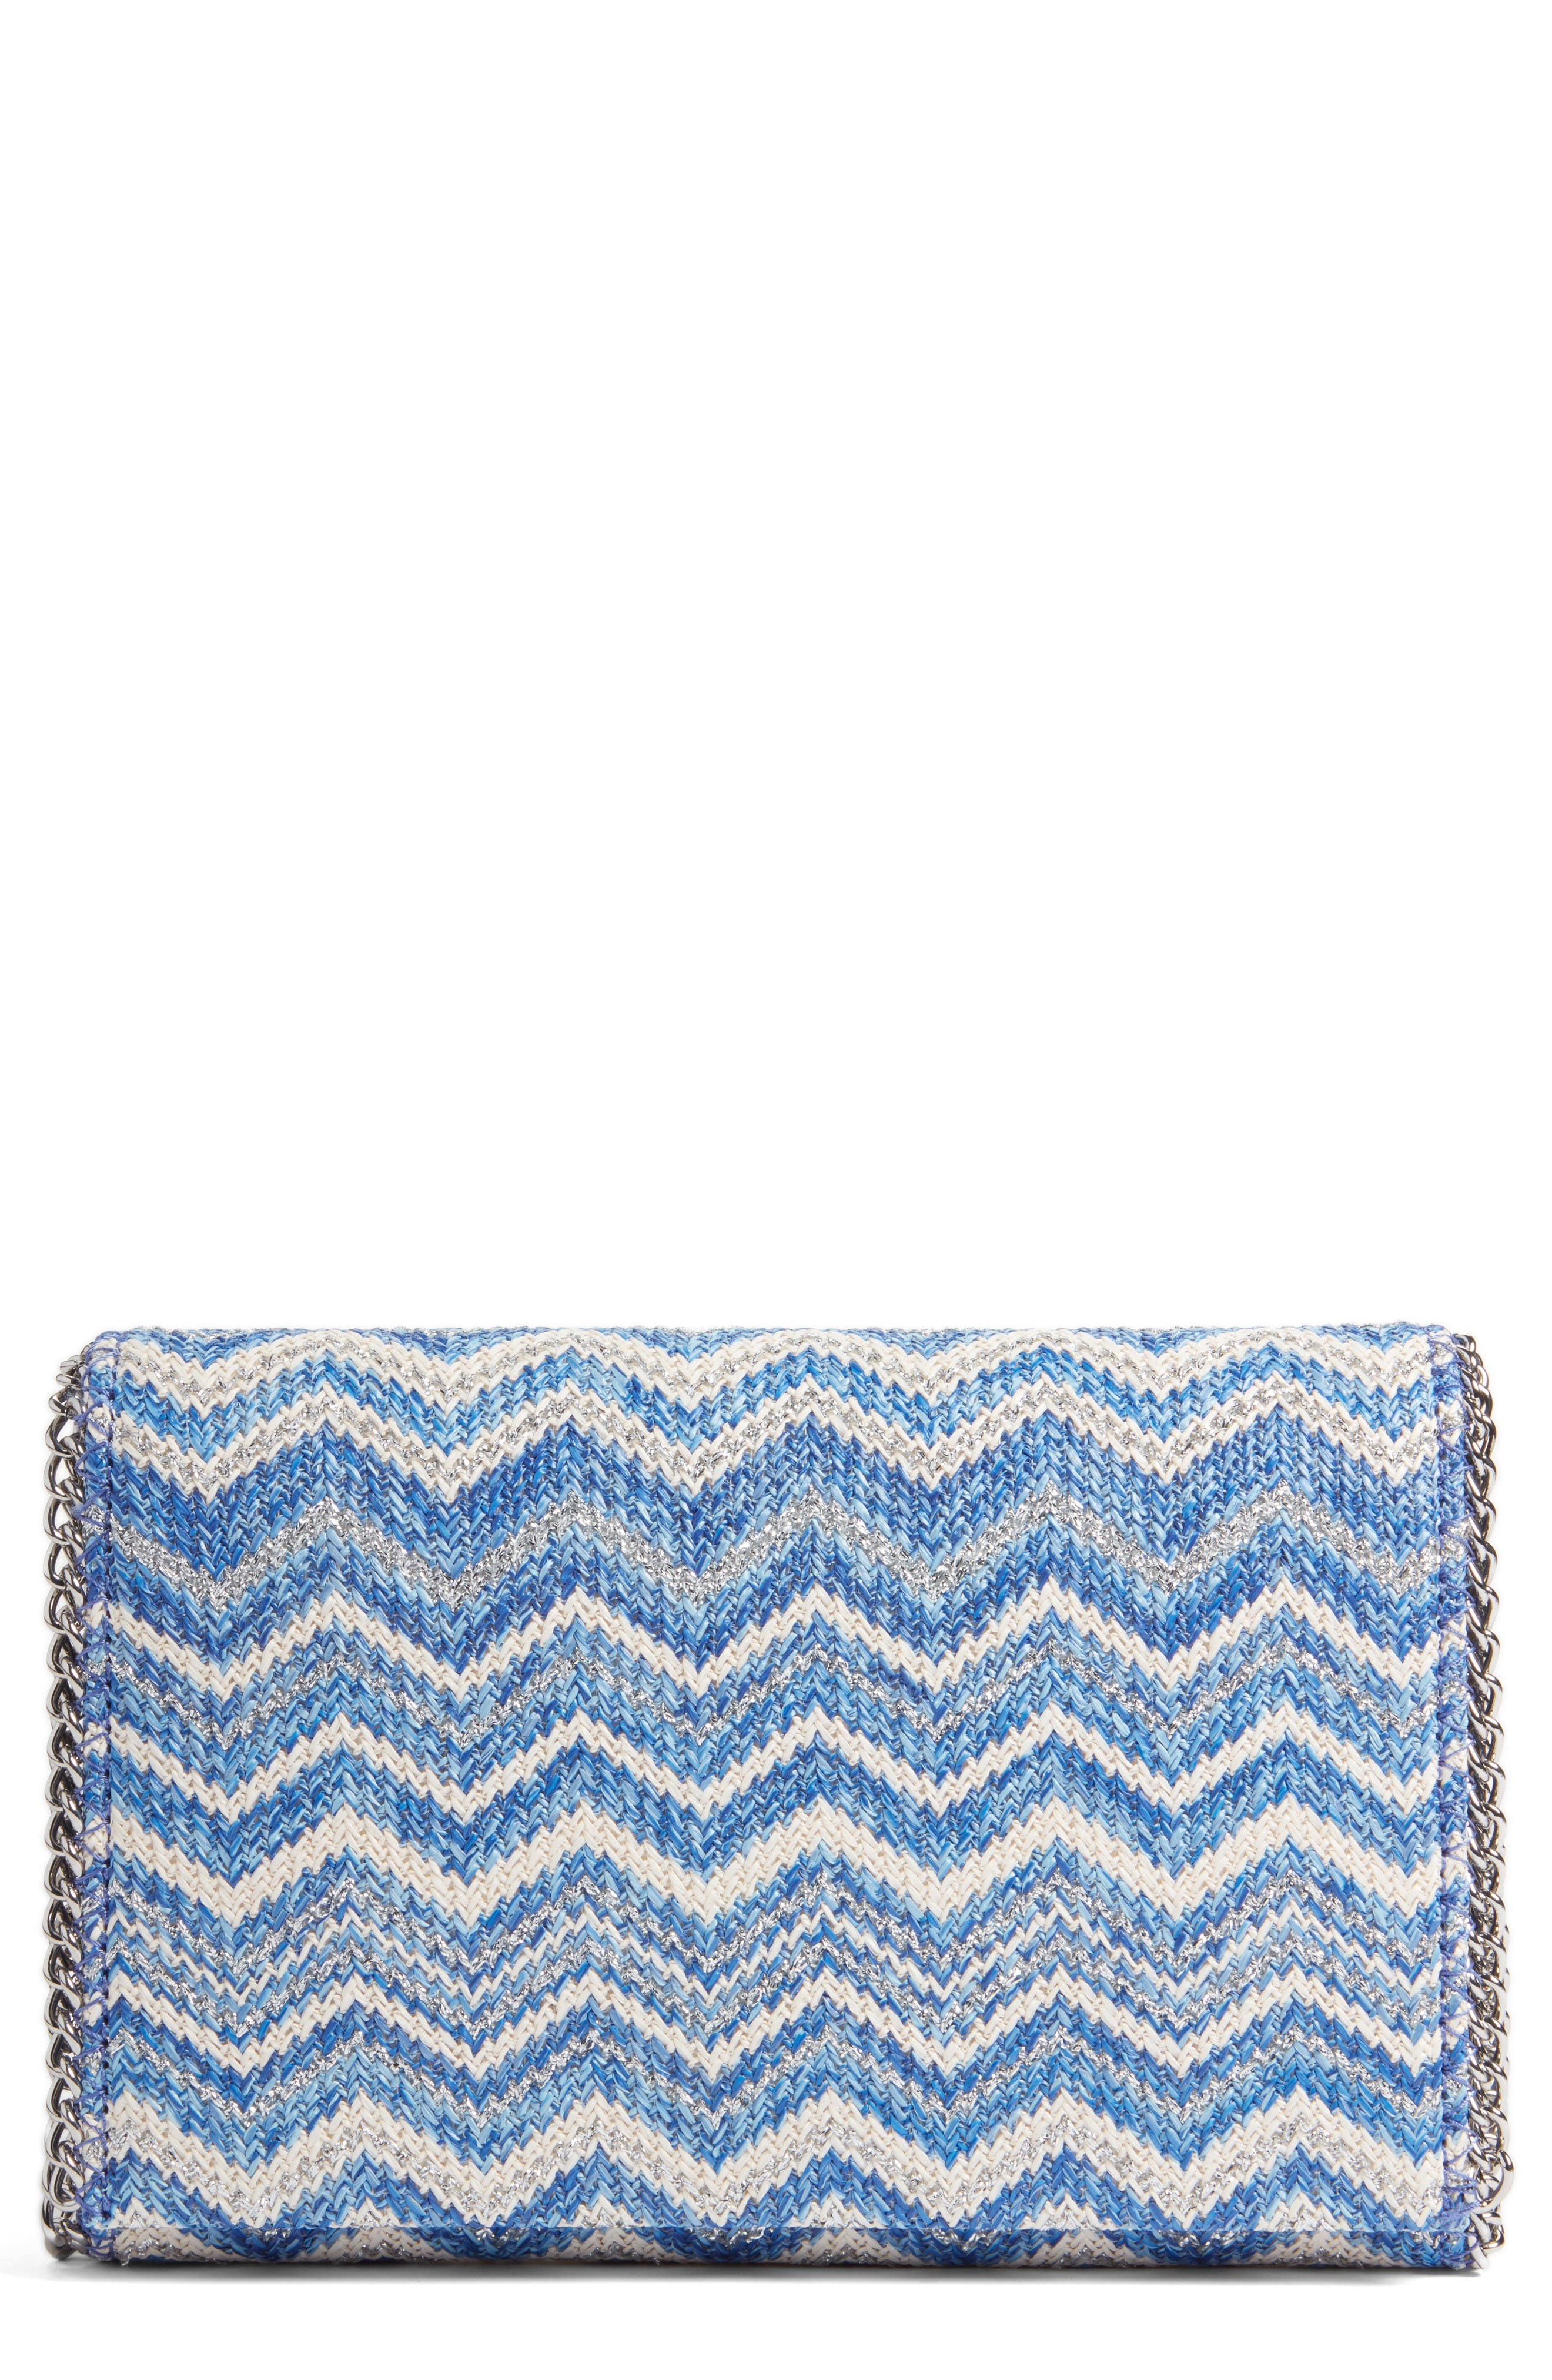 Alternate Image 1 Selected - Chelsea28 Stripe Straw Convertible Clutch